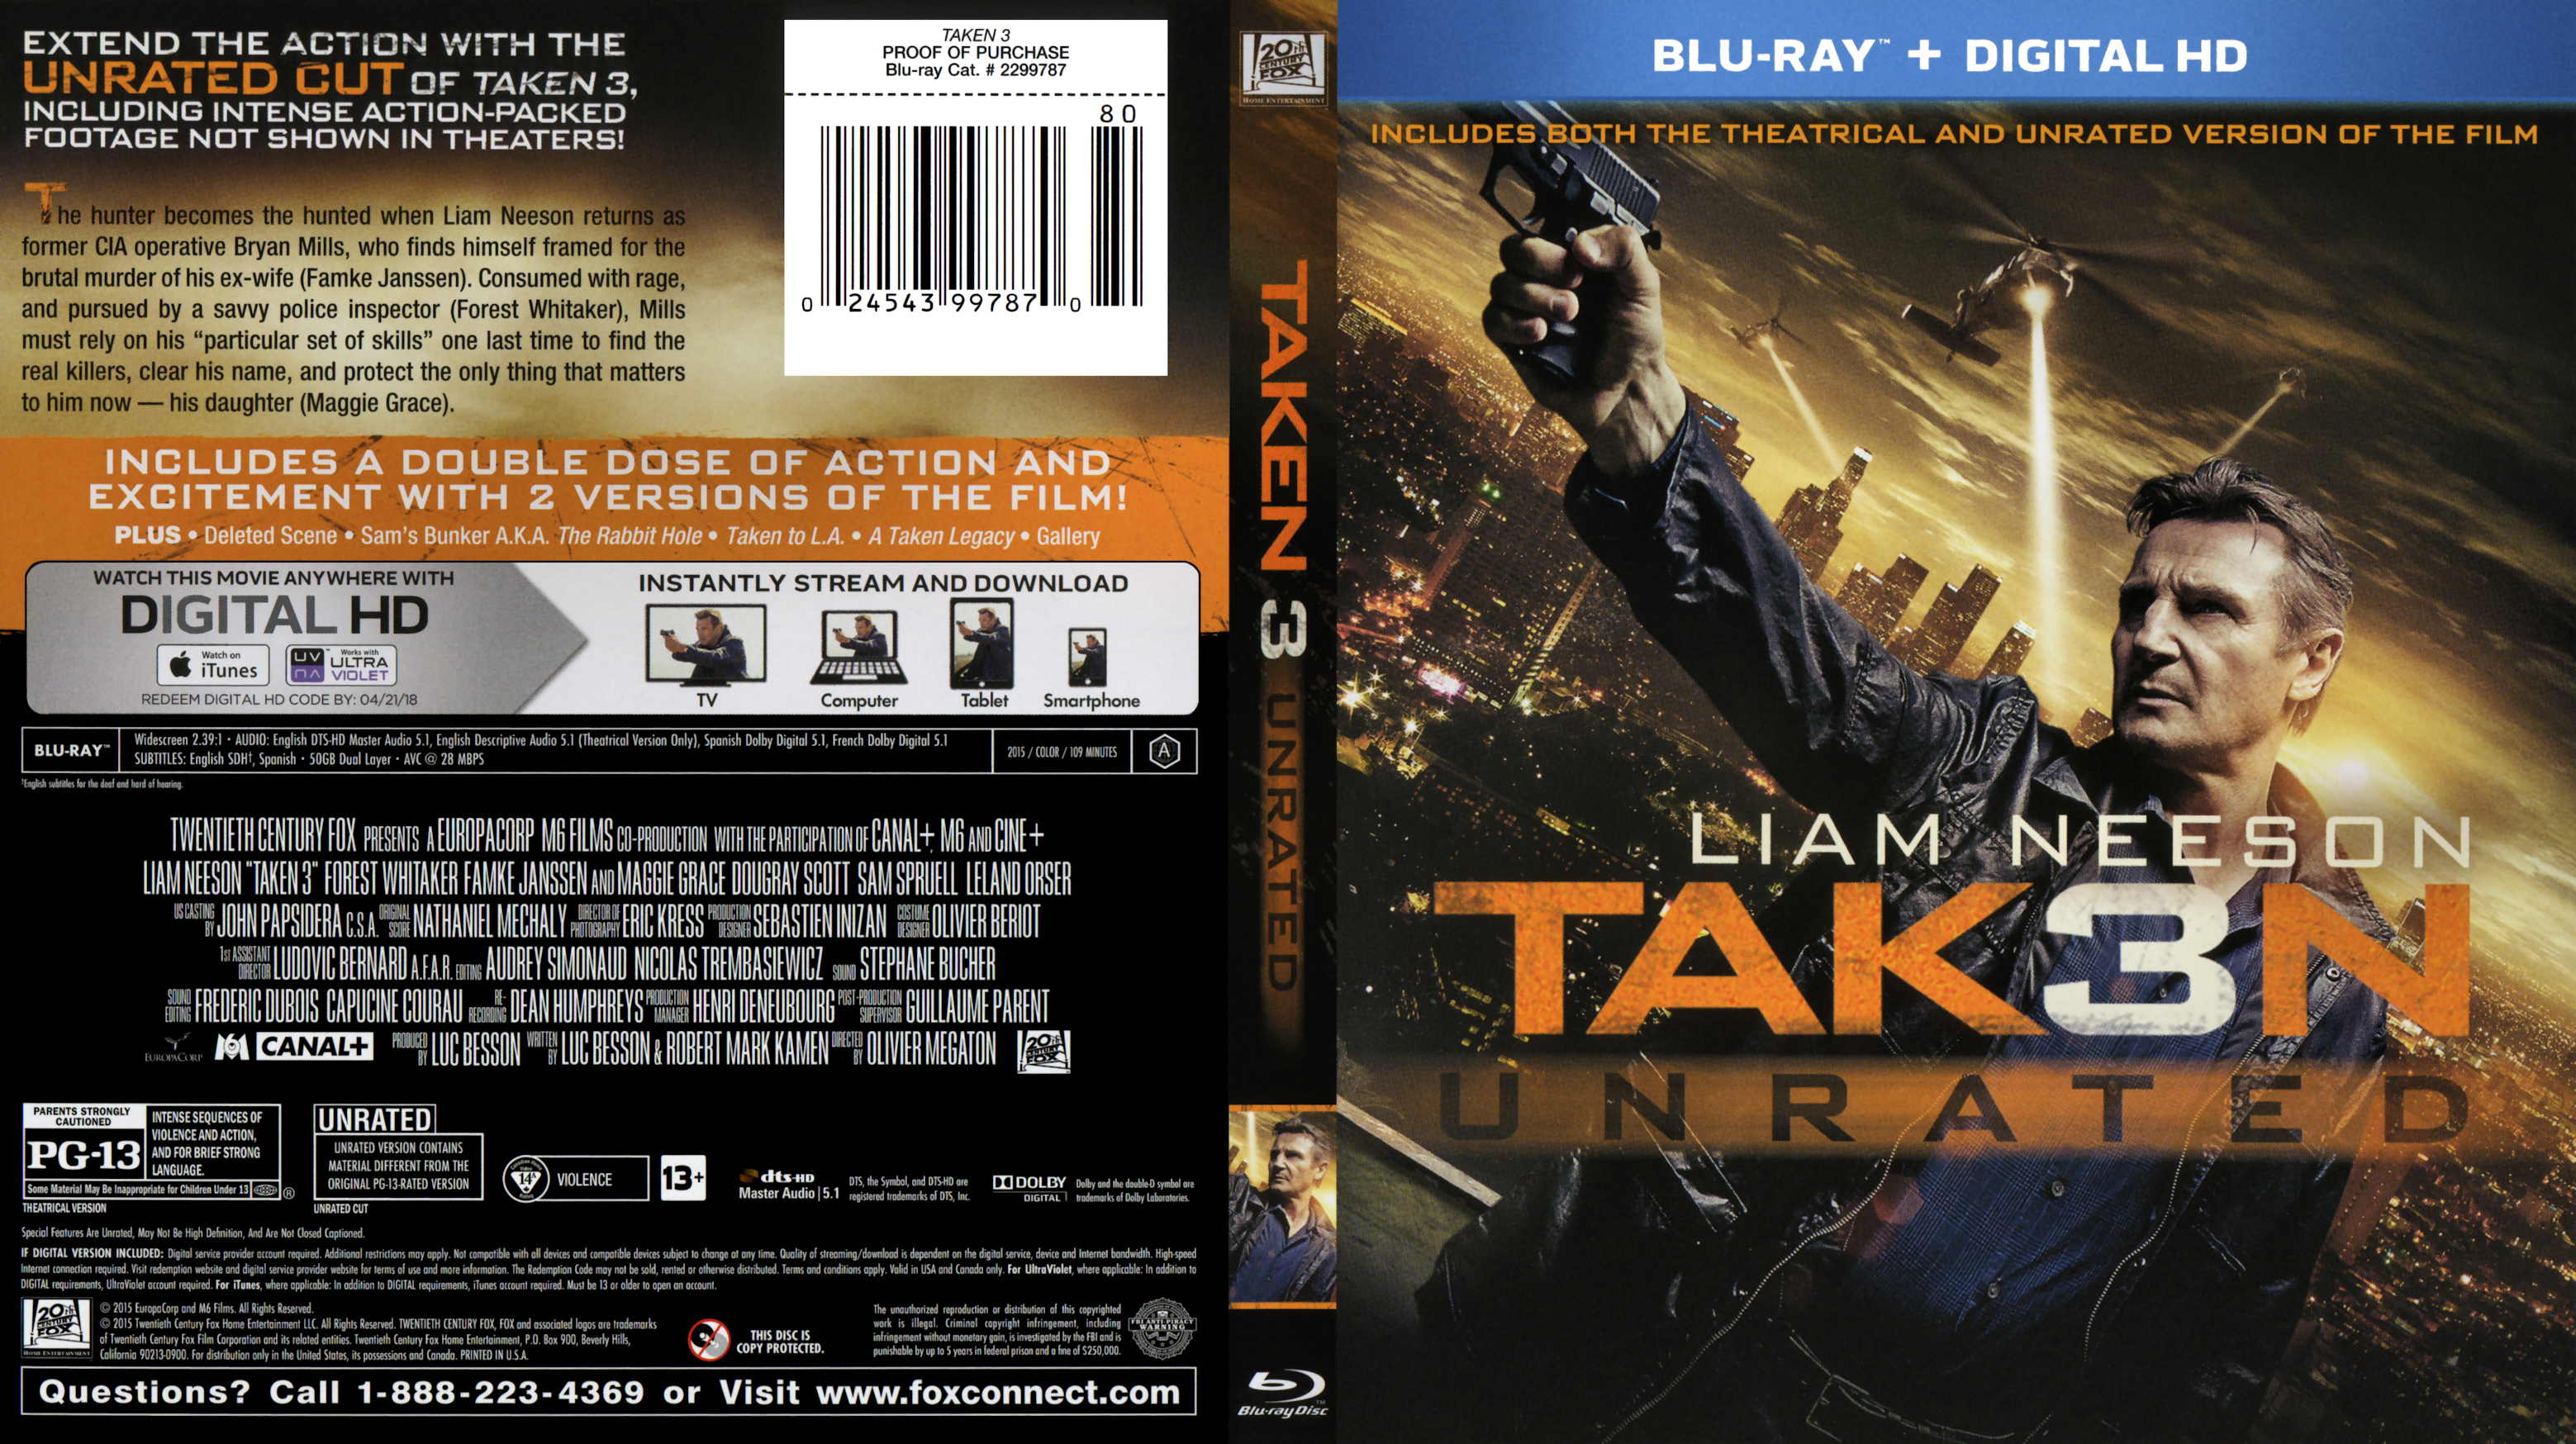 Taken 3 Blu Ray Blu Ray Covers Cover Century Over 500 000 Album Art Covers For Free